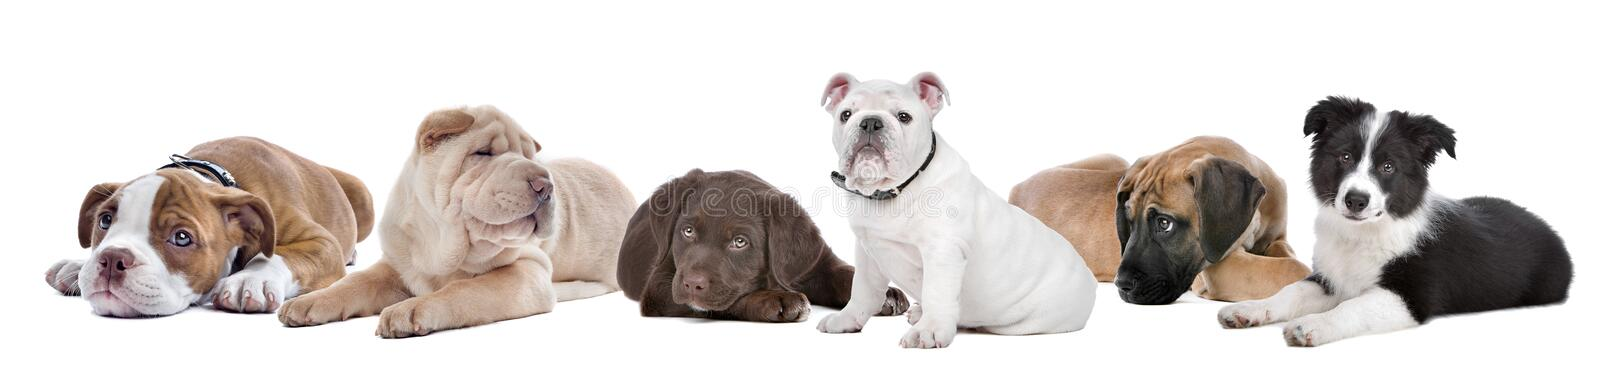 Grand groupe de chiots sur un fond blanc photographie stock